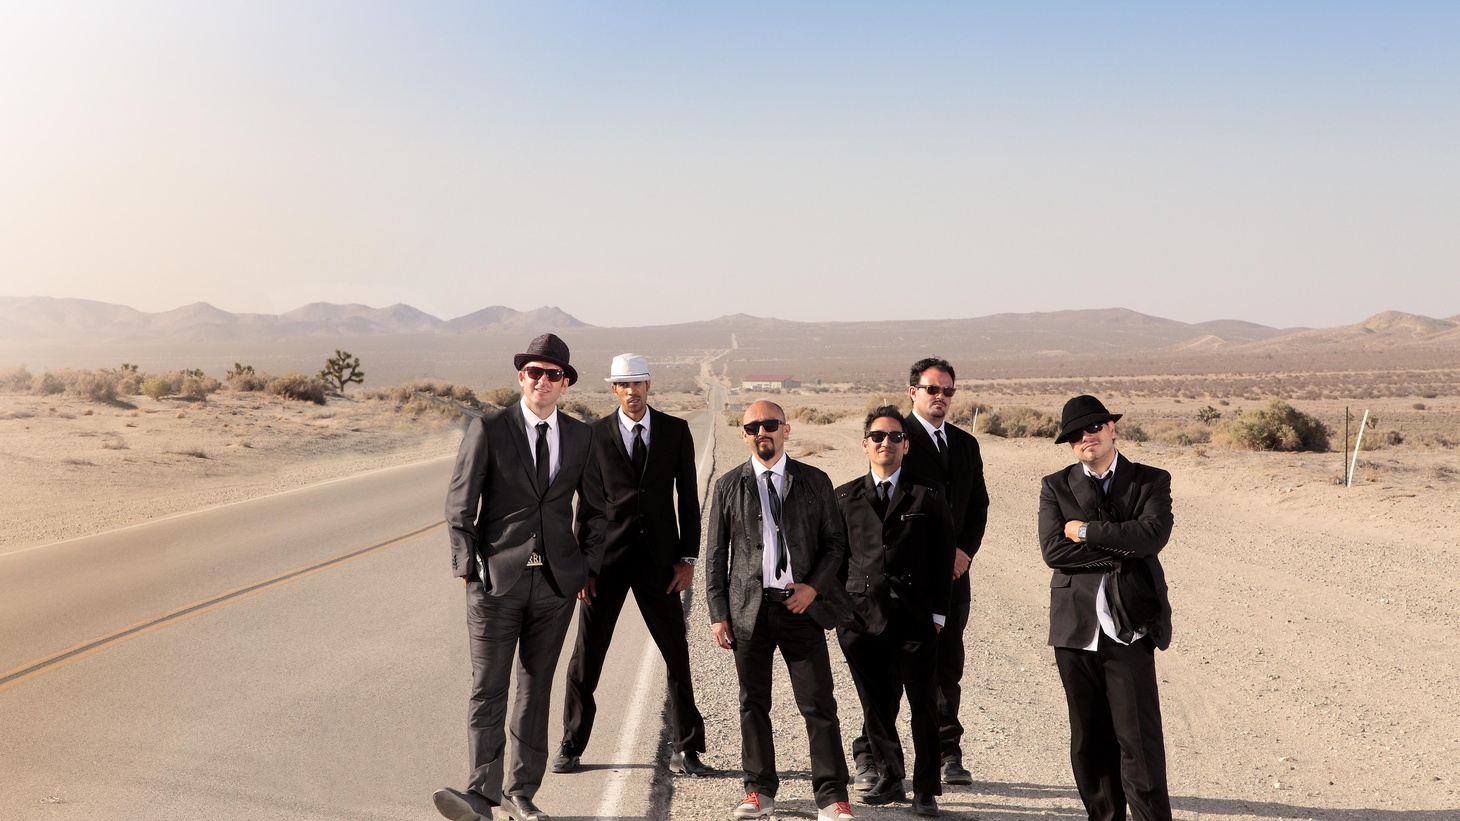 If Los Lobos are the elder statesmen of LA's multi-ethnic music scene, Ozomatli are their younger, scrappier brother...